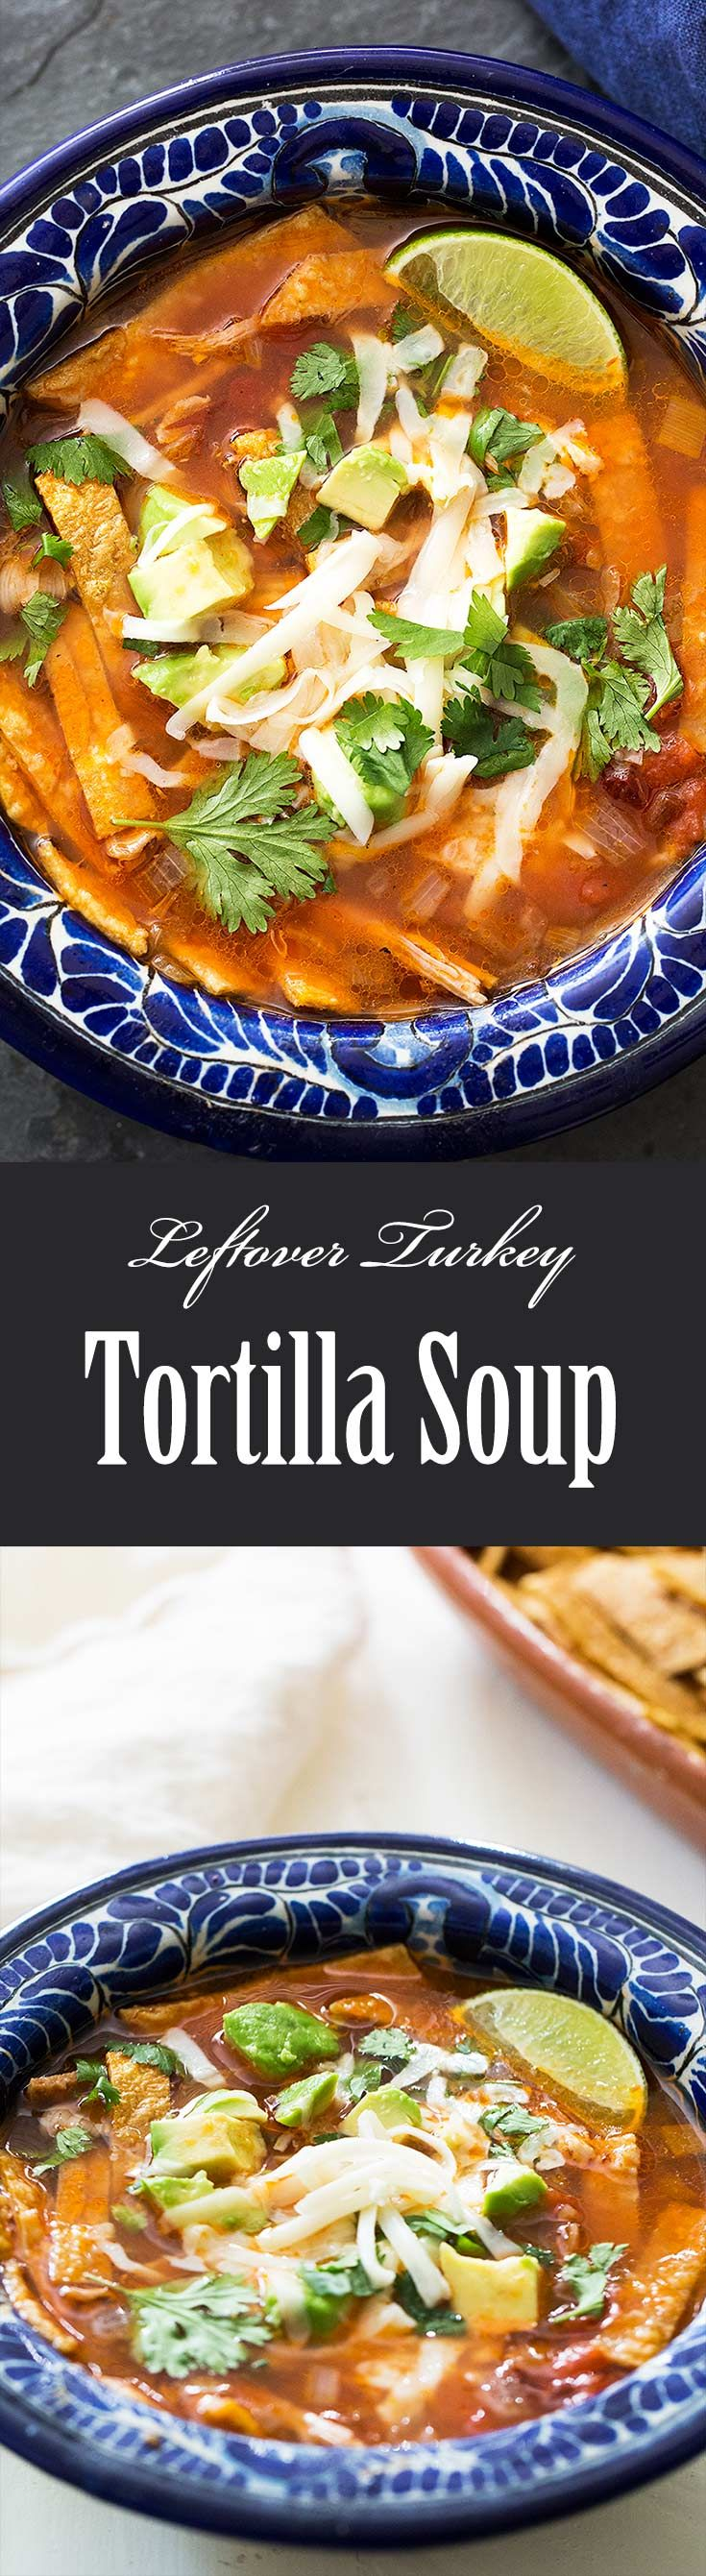 Turkey Tortilla Soup ~ GREAT tortilla soup made with leftover turkey, corn tortillas, and chipotle in adobo. EASY! ~ SimplyRecipes.com